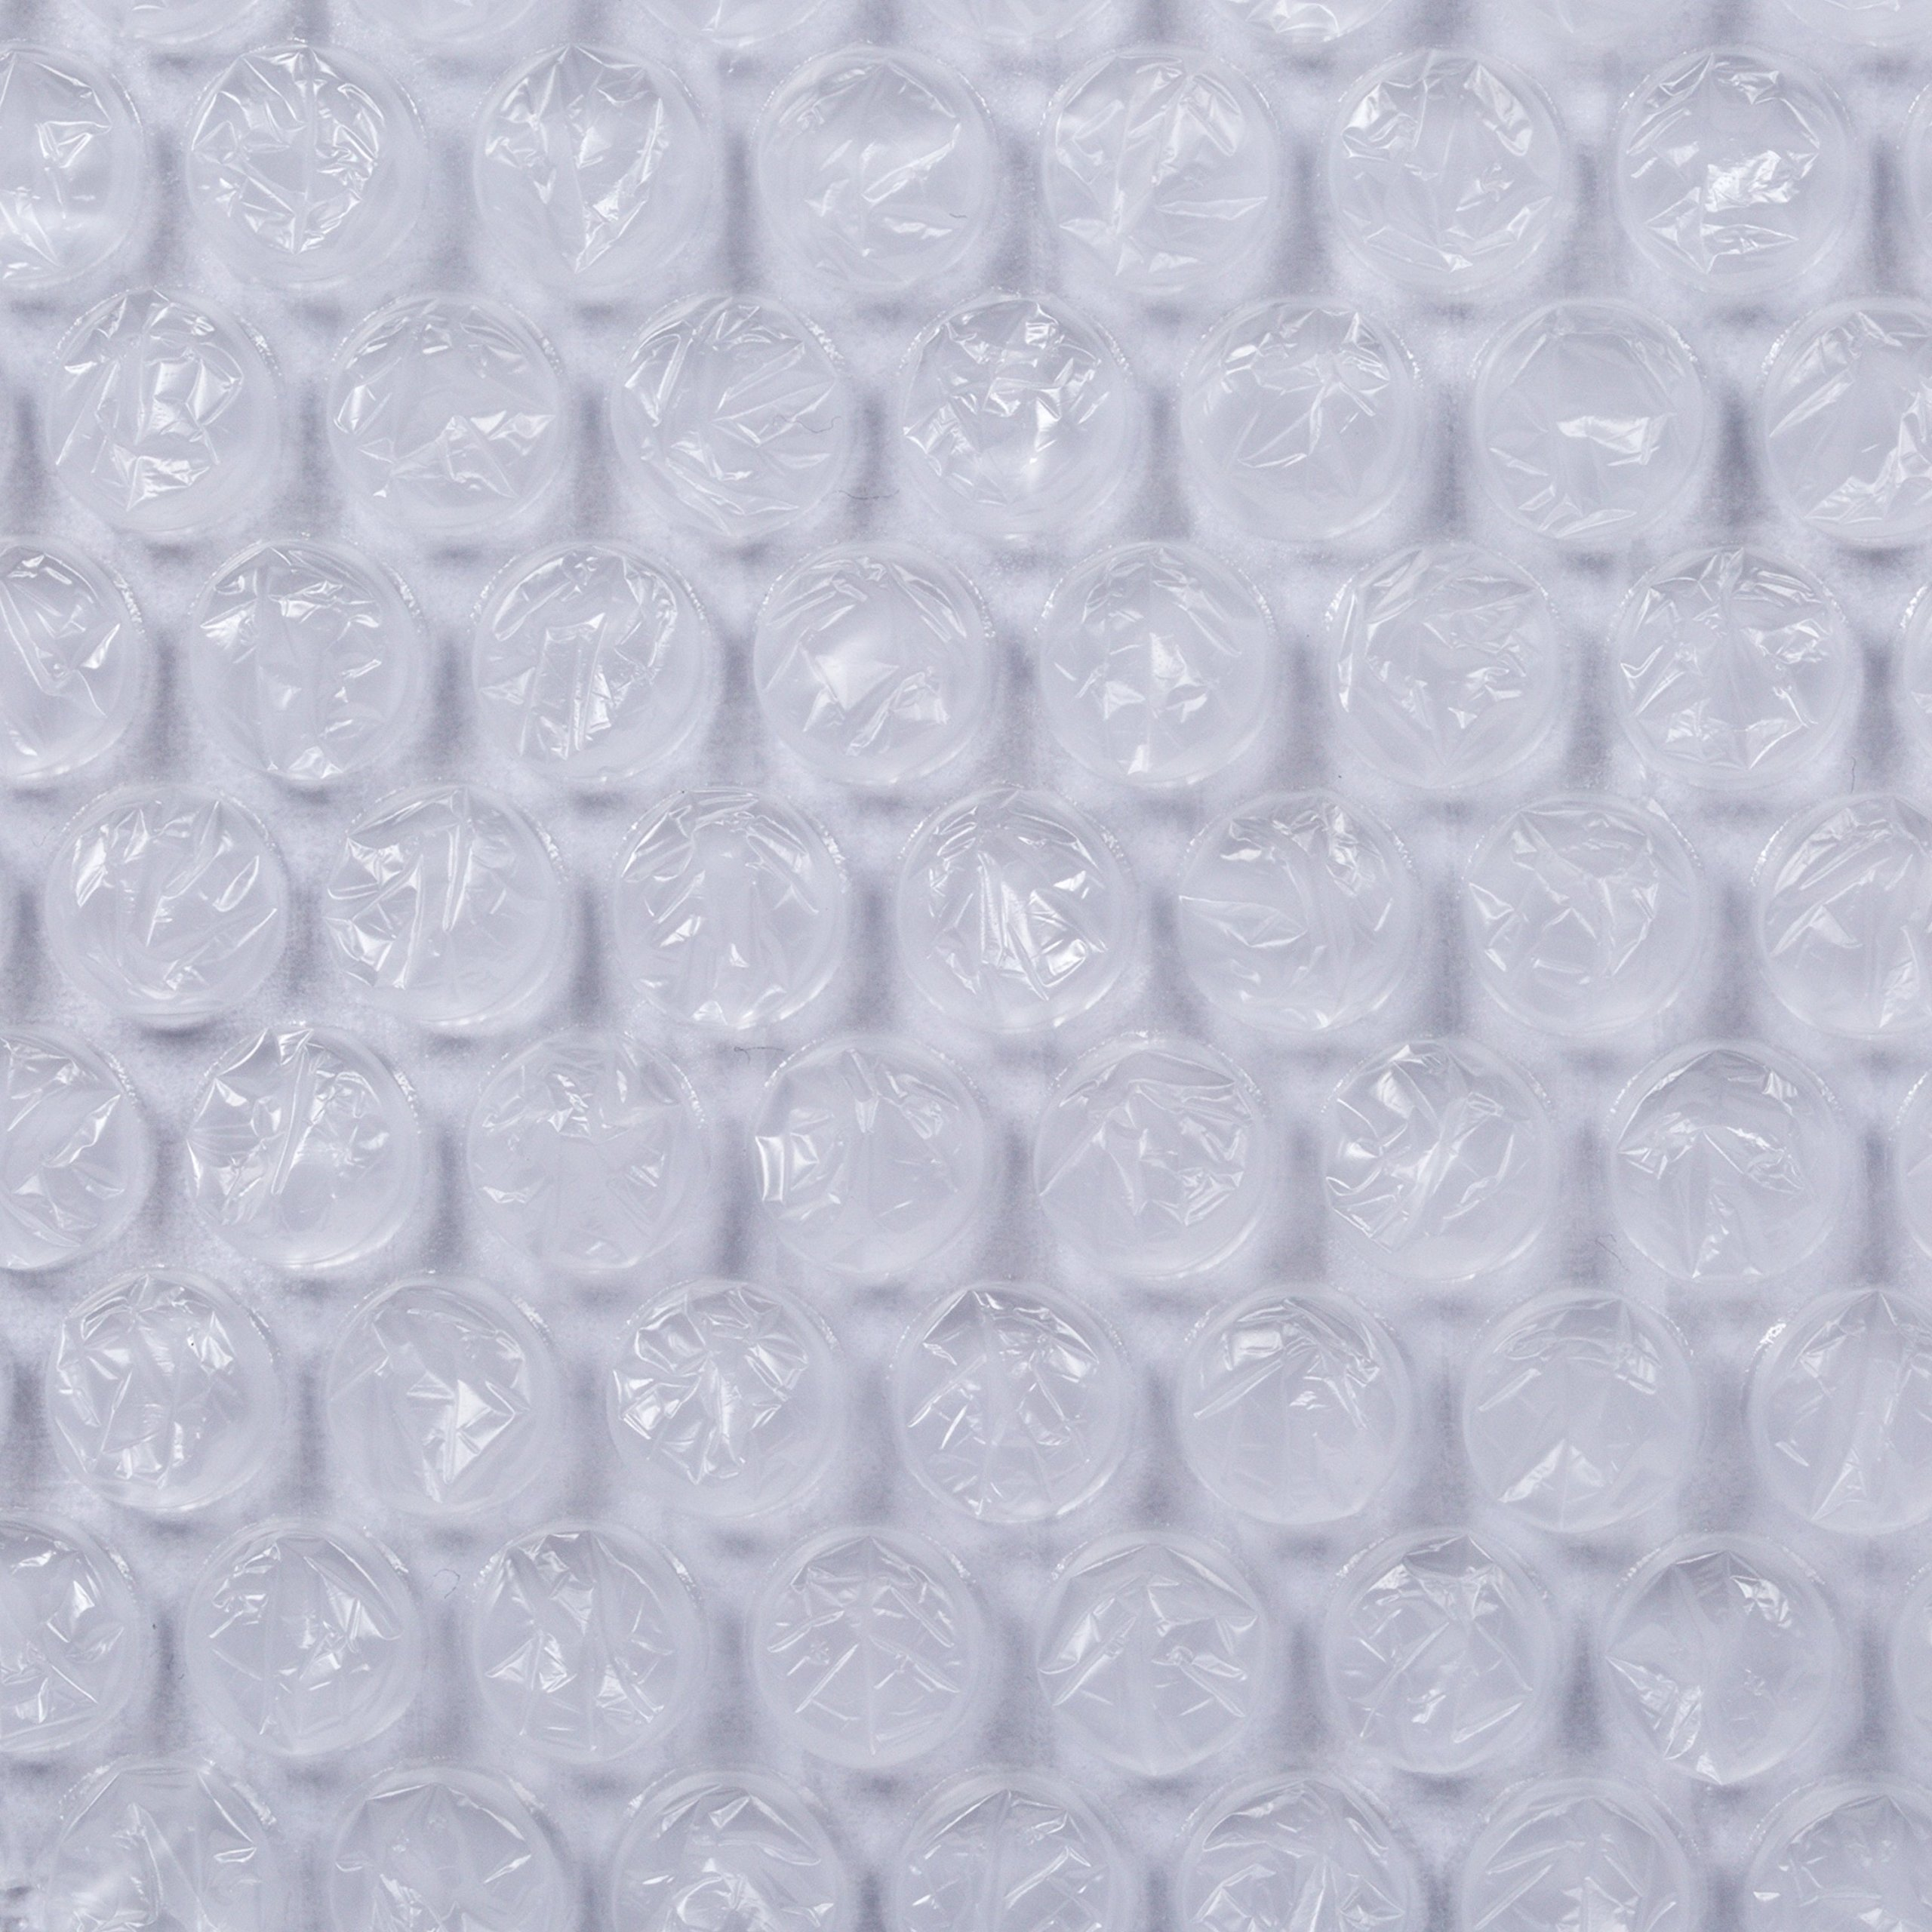 Duck Brand Self-Cling Bubble Wrap Cushioning, 12 Inches x 15 Feet, Clear (280055)